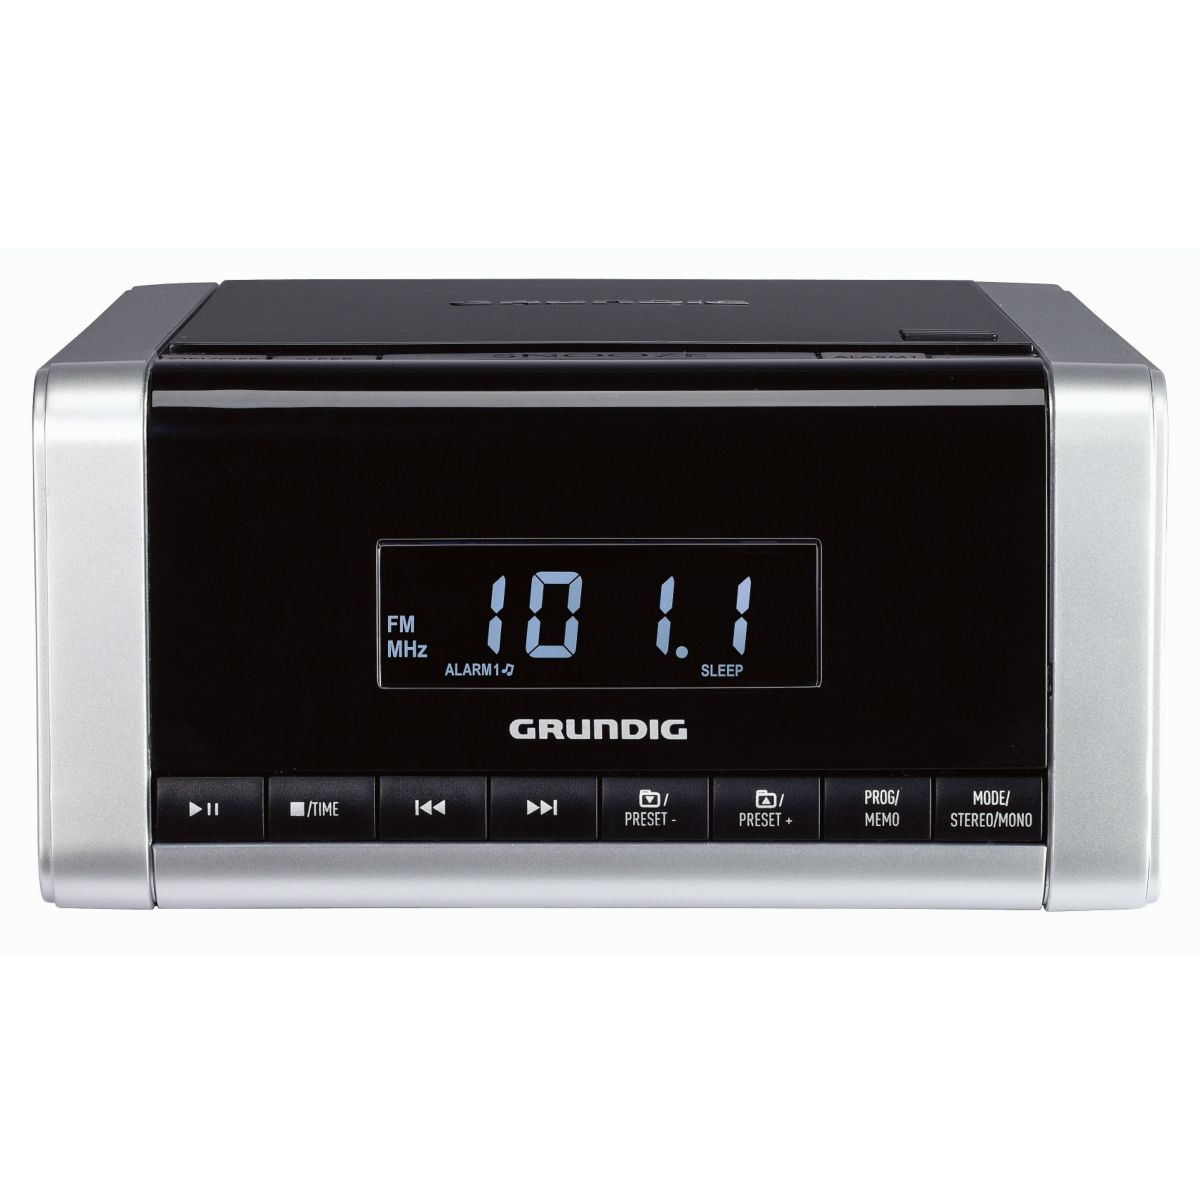 grundig ccd5690spcd poste radio cd mp3 comparer avec. Black Bedroom Furniture Sets. Home Design Ideas